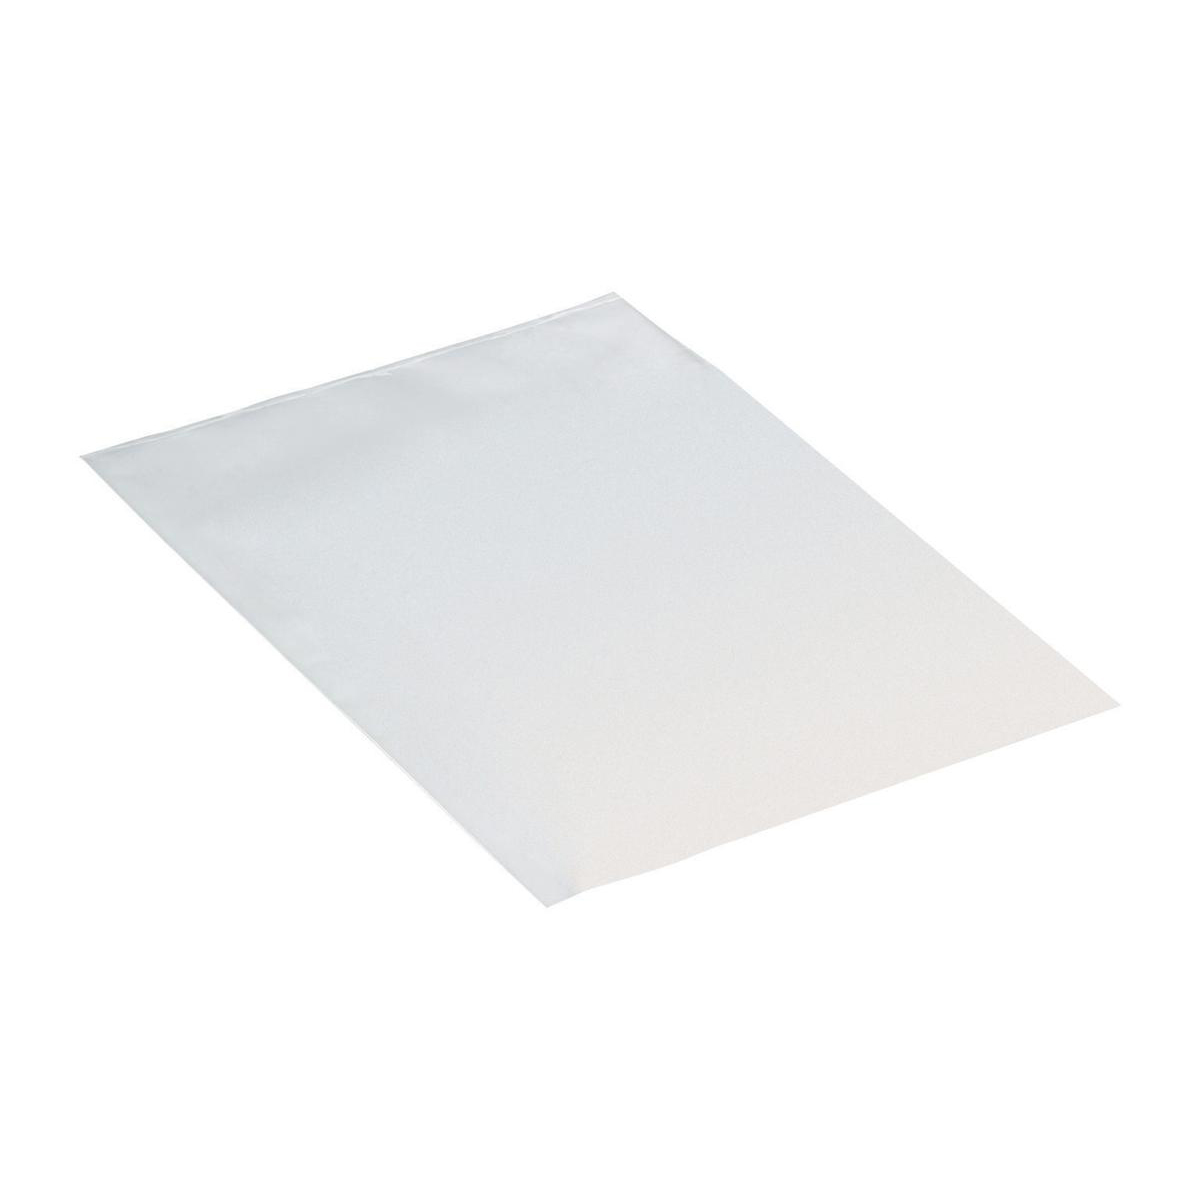 Polythene Bags 305x457mm 100 Micron Clear [Pack 250]